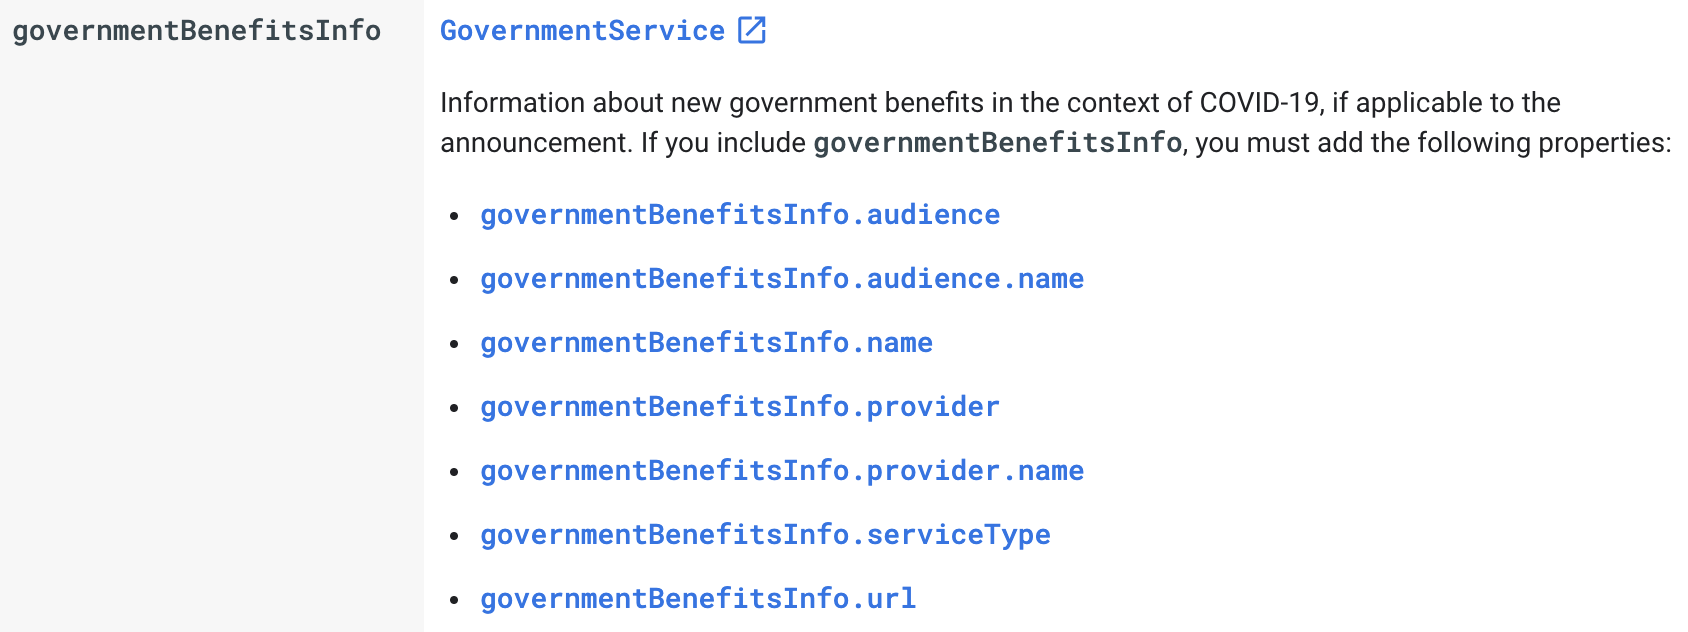 Google's breakdown of government benefit schema options